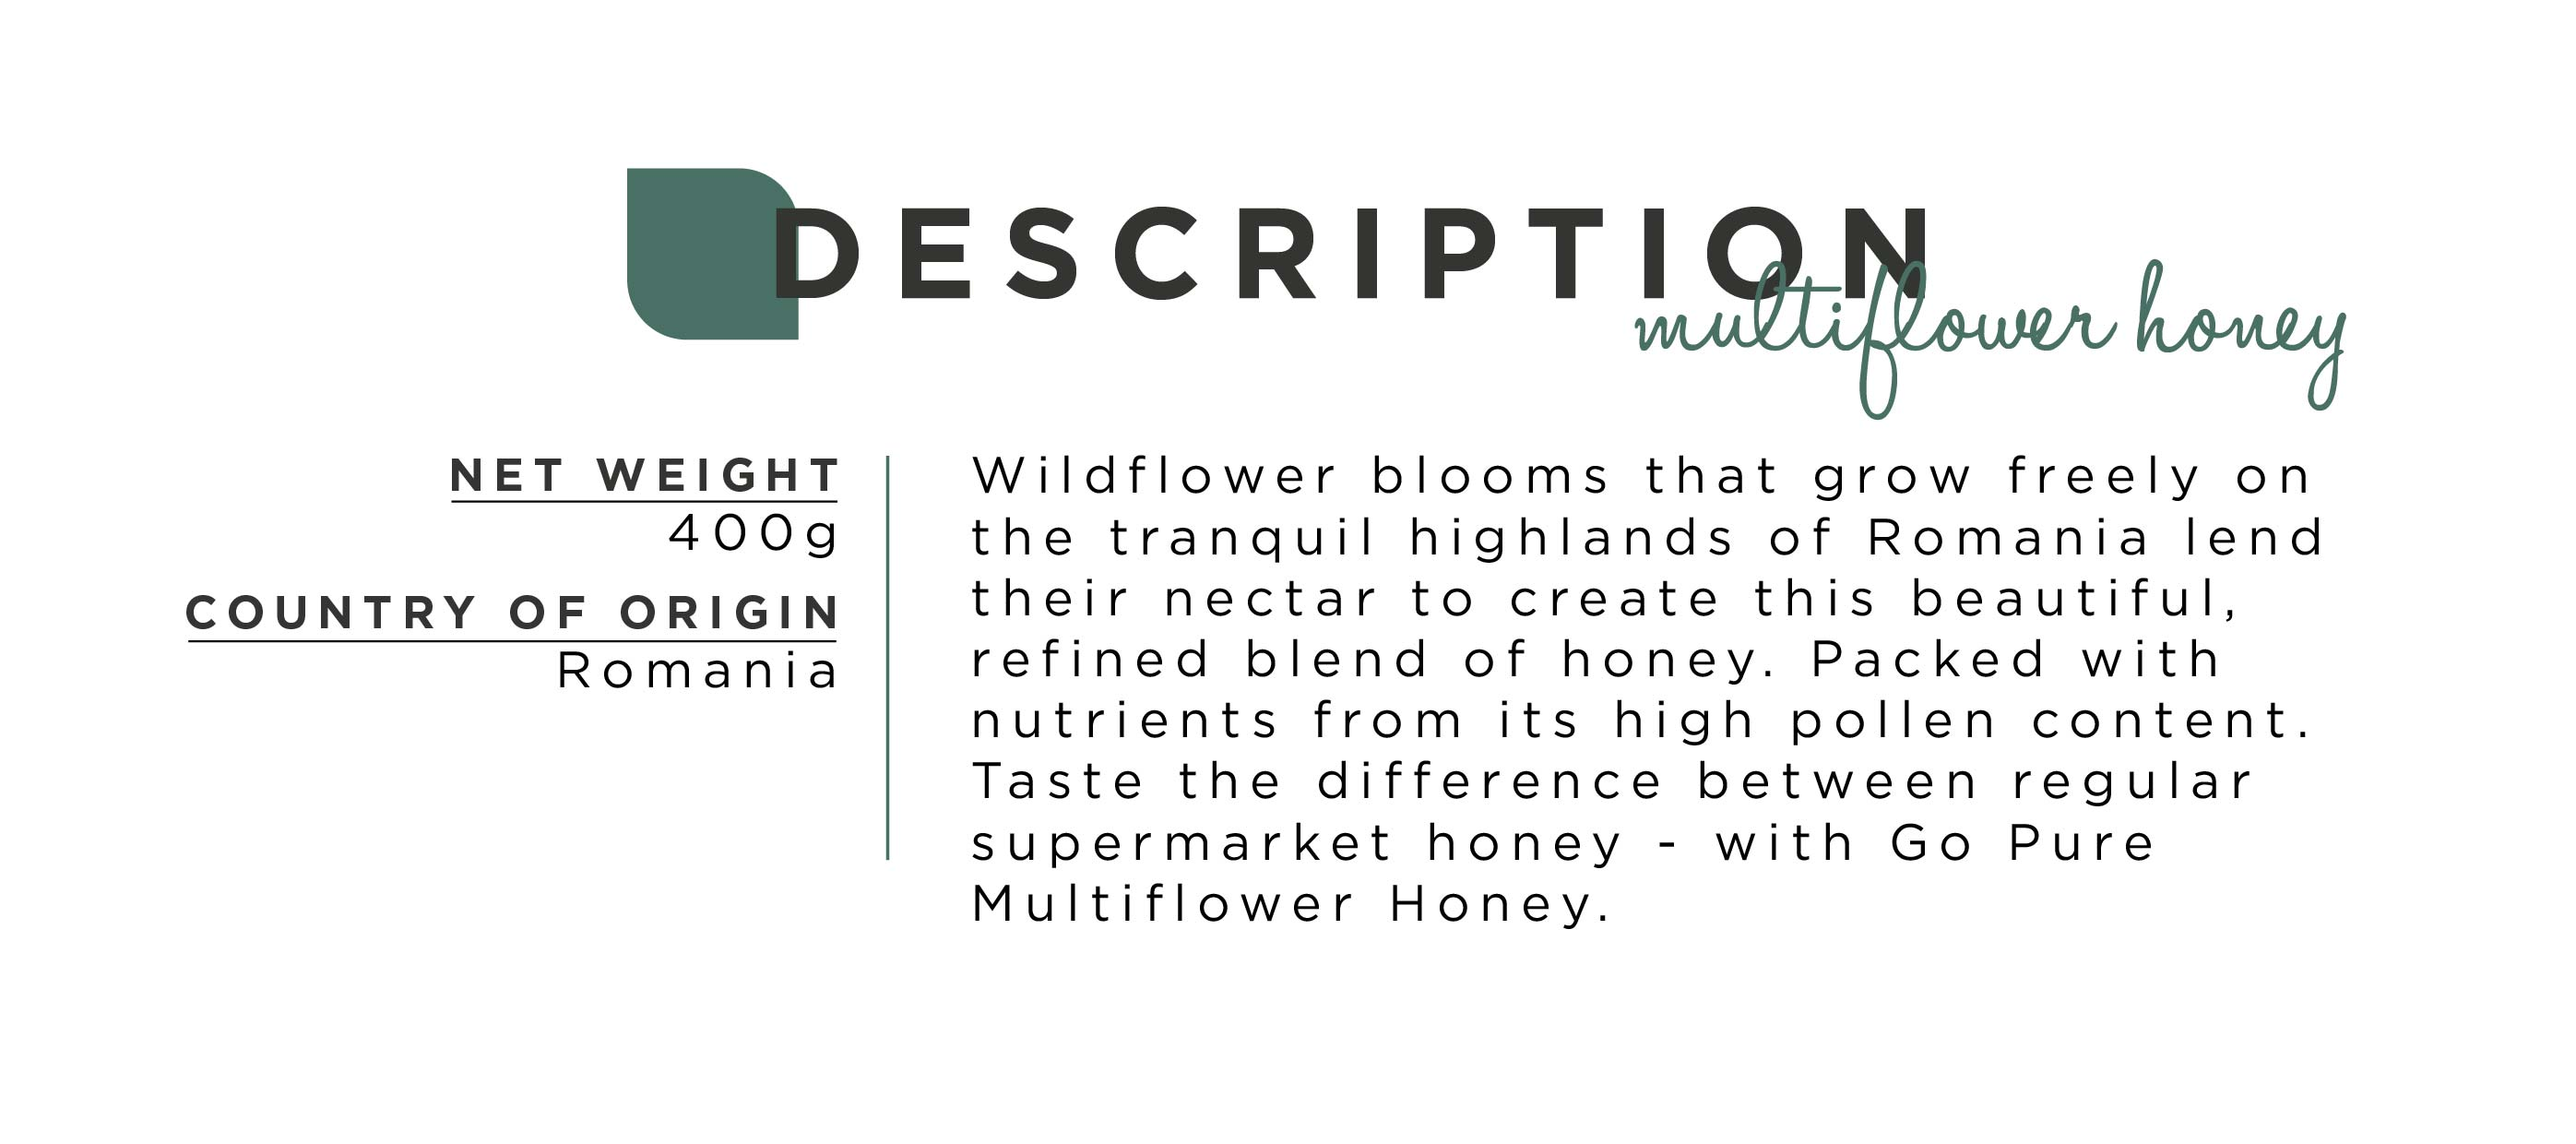 Description Multiflower Honey